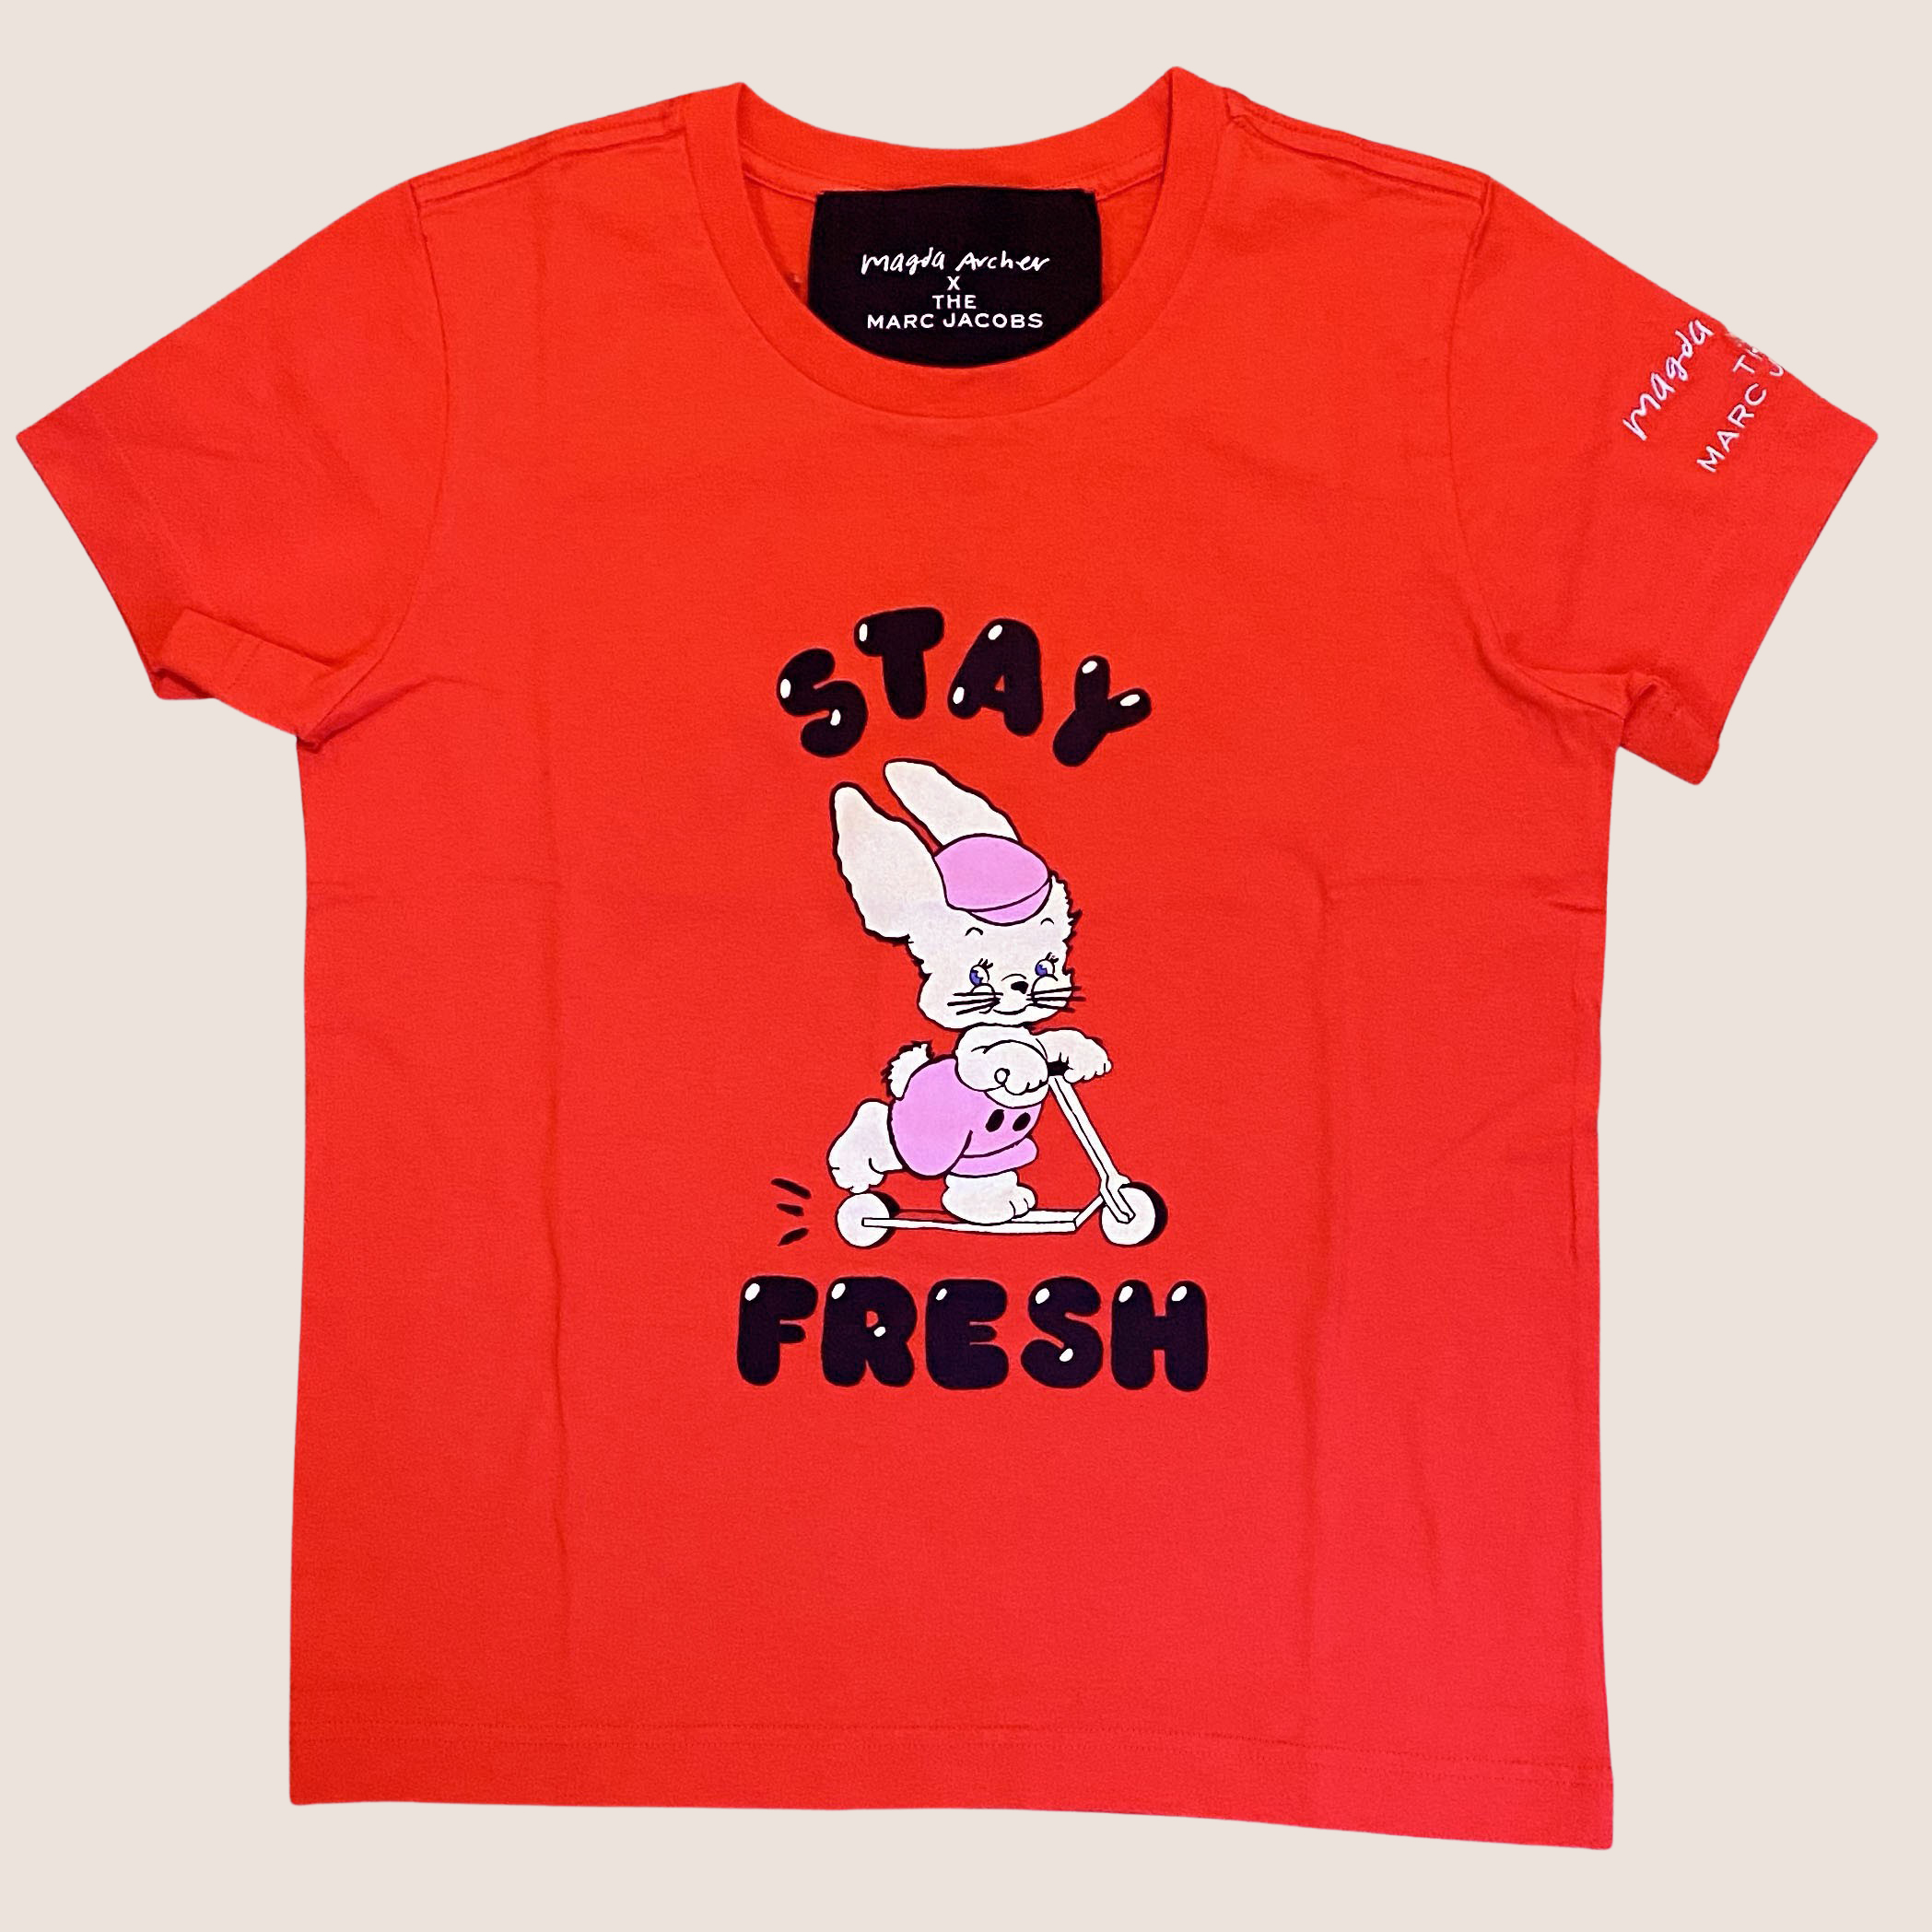 Marc Jacobs - The Magda T-Shirt